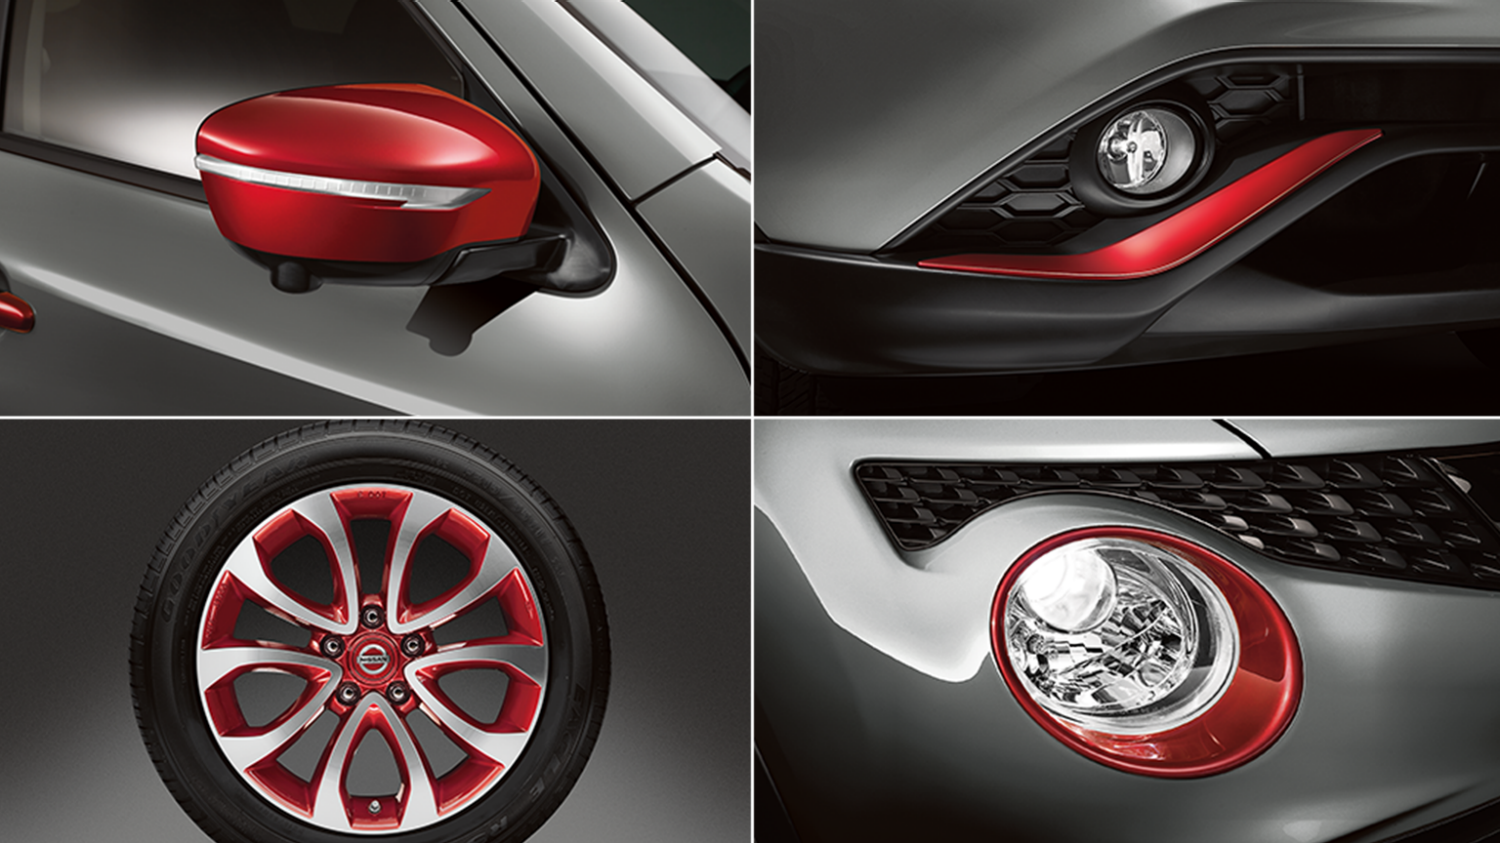 Compact & mini SUV design - Personalise Exterior pack | Nissan Juke